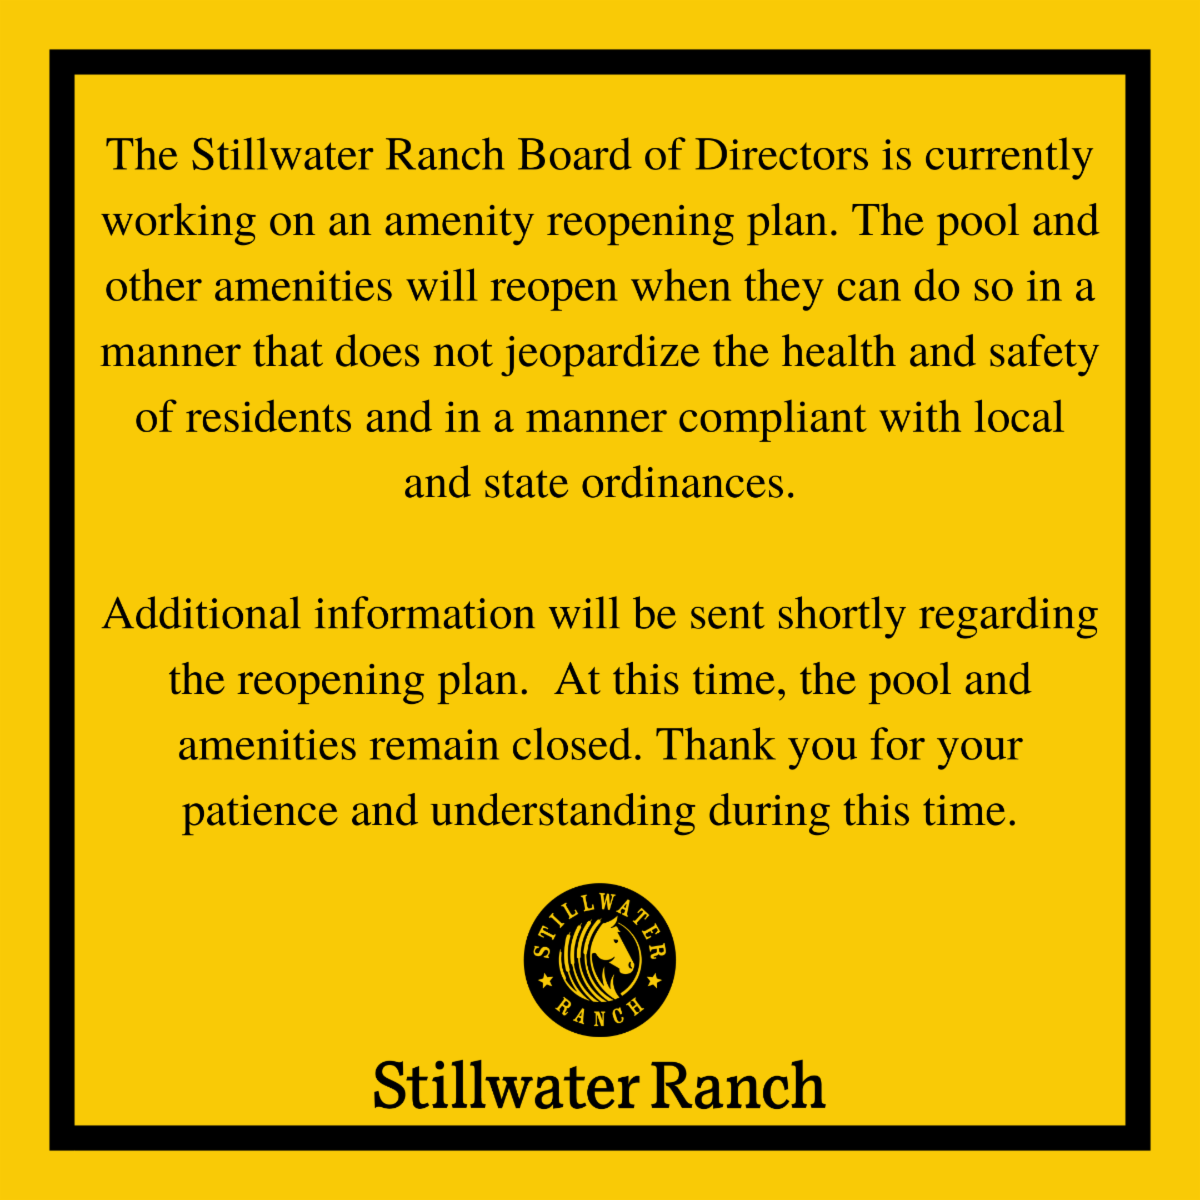 The Stillwater Ranch Board of Directors is currently working on an amenity reopening plan. Additional information will be sent shortly regarding the reopening plan.  At this time, the pool and amenities remain closed. Thank you for your patience.